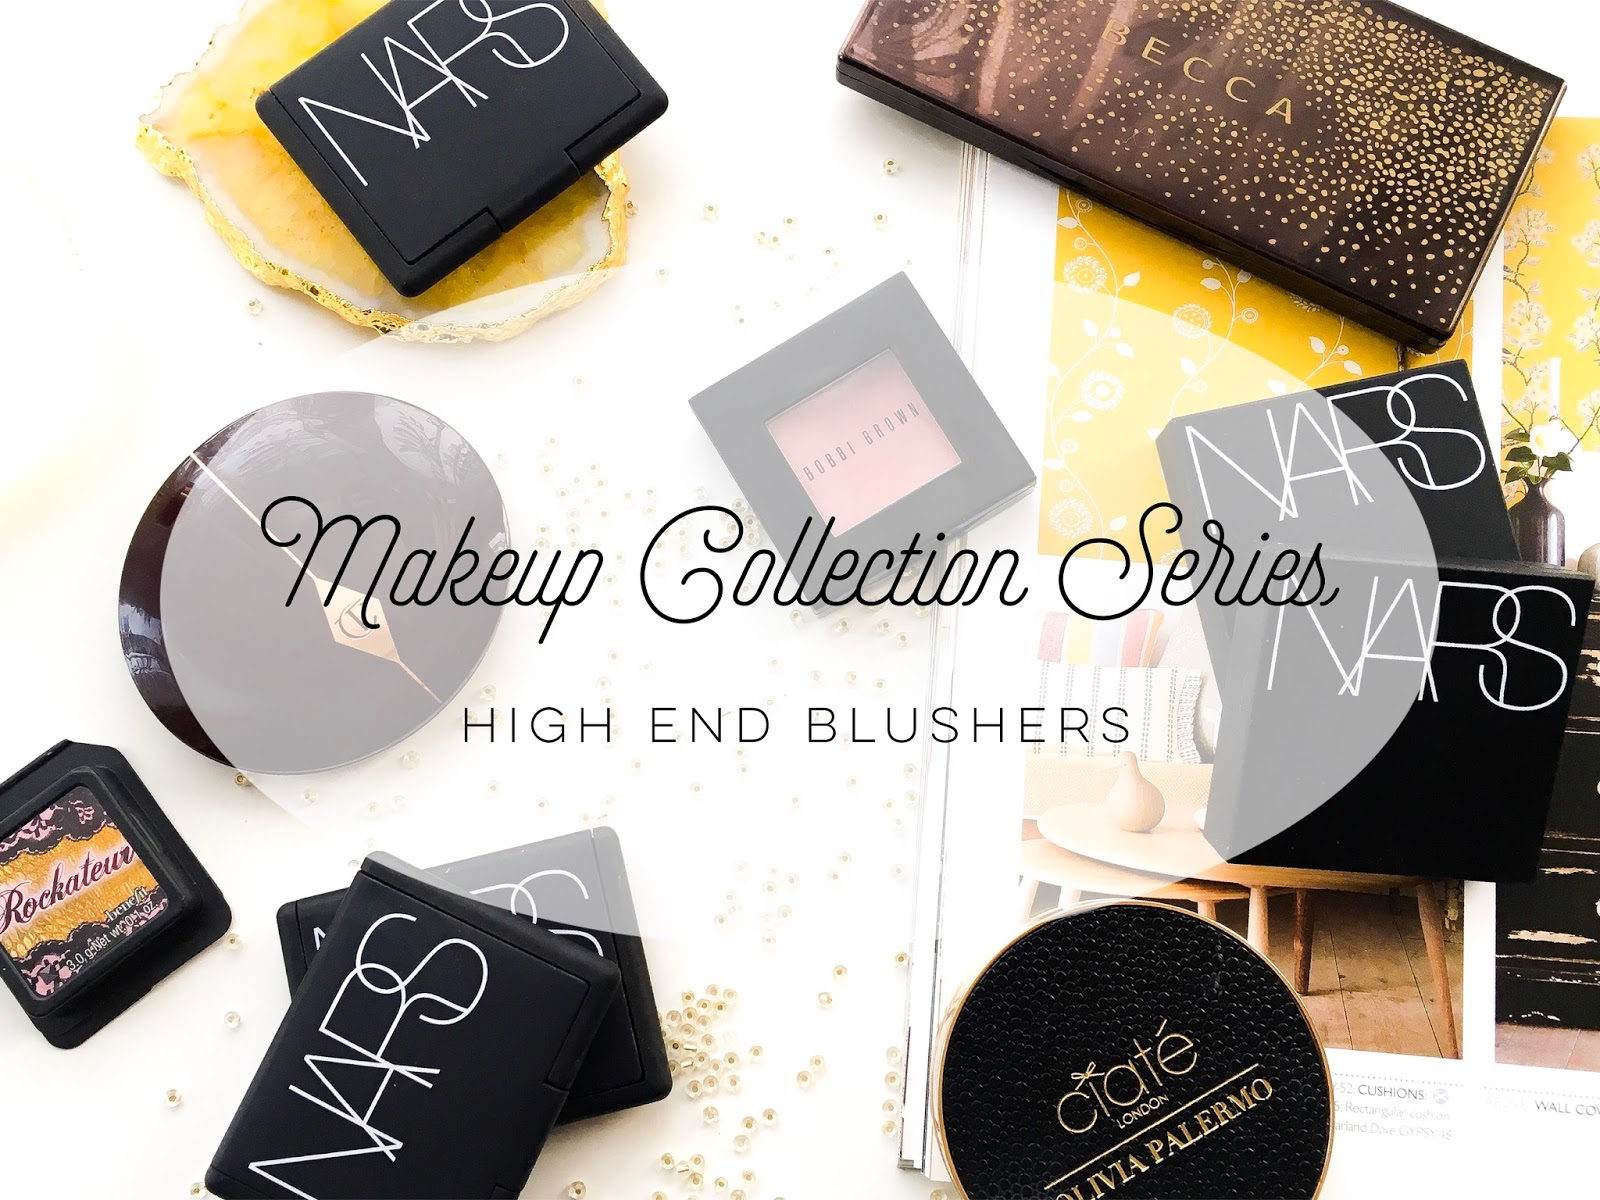 blusher collection, high end blusher collection, makeup collection series, ummbaby makeup collection